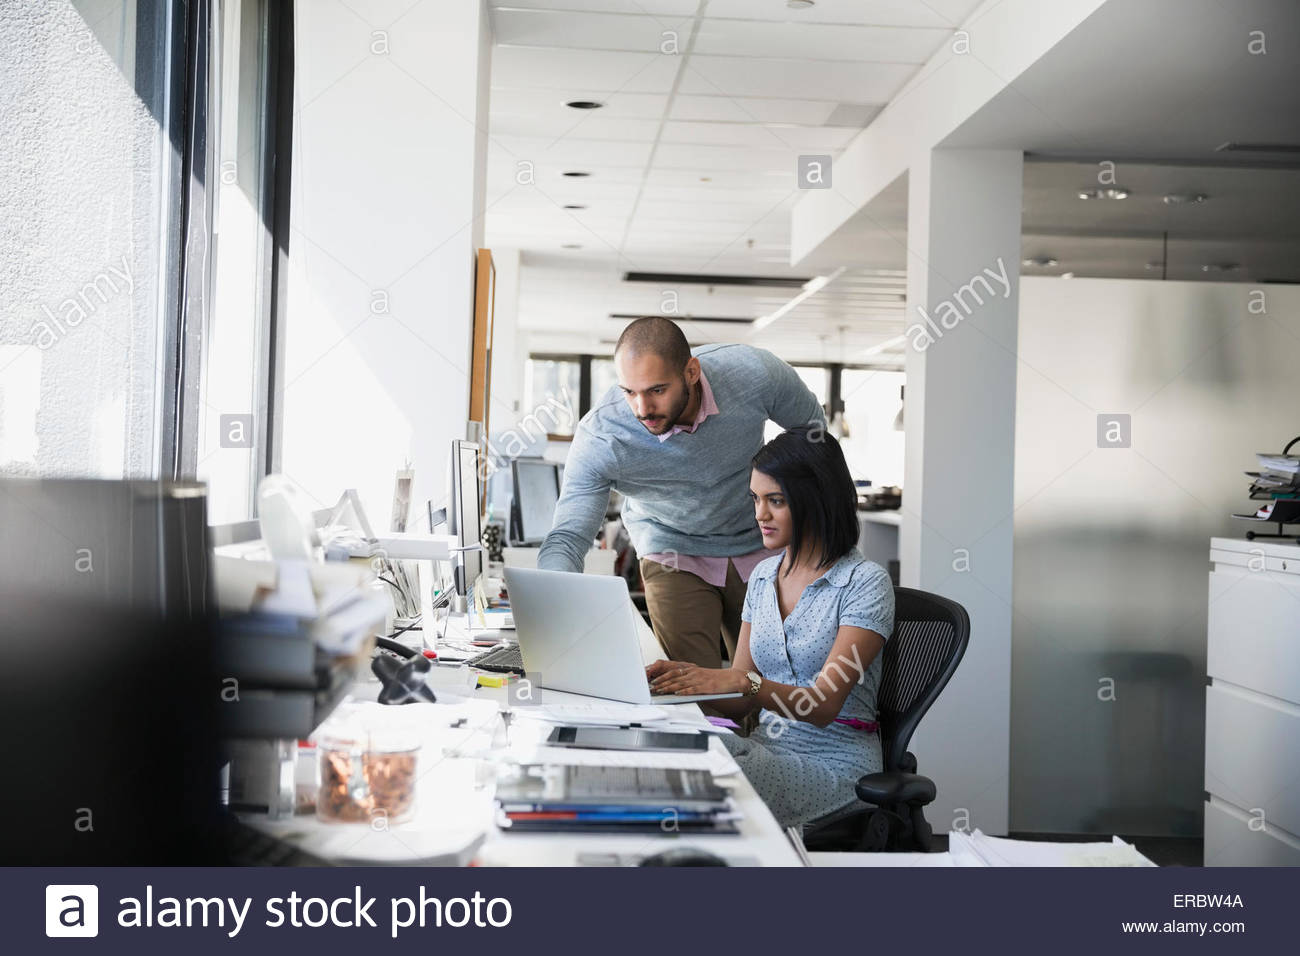 Businessman and businesswoman working at laptop in office - Stock Image